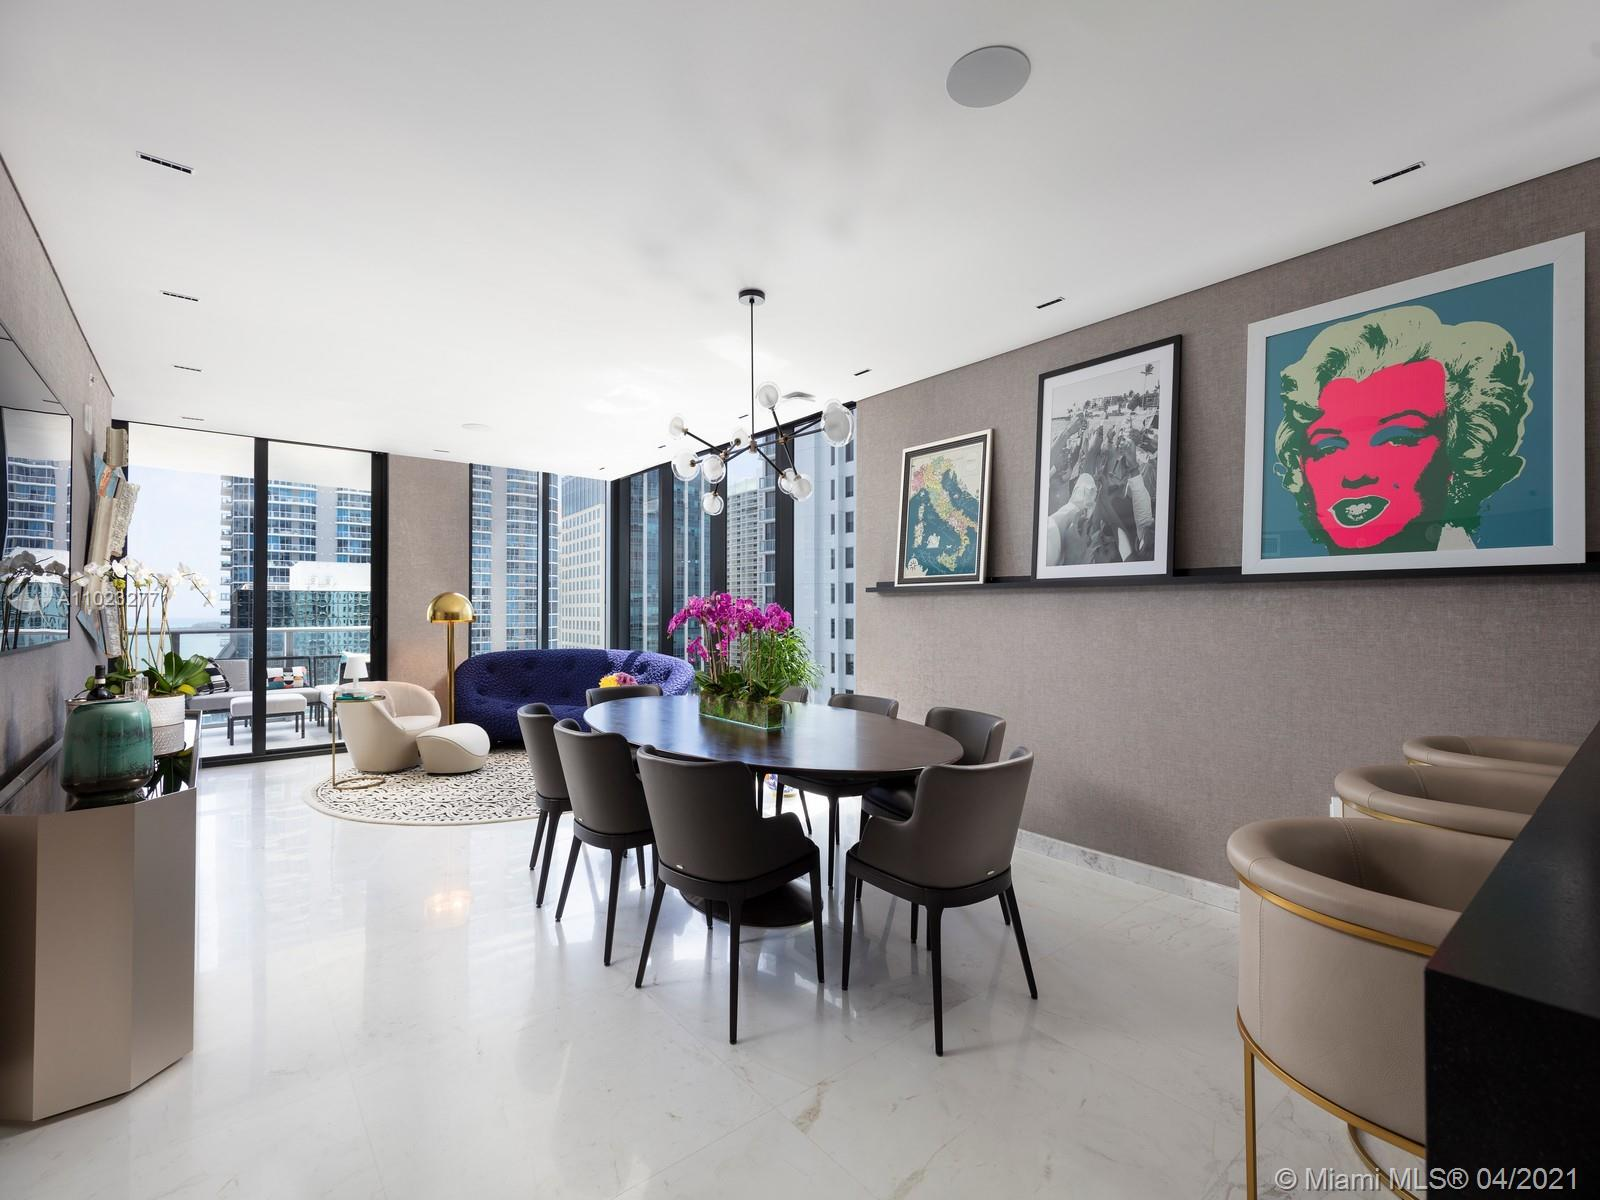 Welcome to The Trophy Unit of 1010 Brickell. With 3 beds + Den & 3 baths, this unique corner unit was completely upgraded, unlike any other unit in the building. Private elevator takes you into a spacious Den w/a custom built-in bar between the Den & upgraded Kitchen, which was completely redone by Italkraft w/custom appliance wood millwork. Drop down ceiling in Living Room & Den, including dimmable lighting and surround sound speakers throughout the unit. Smart home system to control lights, speakers, blinds, and AC from your phone. Enjoy your balcony w/an electric BBQ and stunning water and city views. Building amenities: 2 pools (Heated & Rooftop), Basketball, Squash, Arcade, Jog Track, Gym, Spa, Social Room, Theatre & Business Center. Unit next door, #2404, also available for sale.